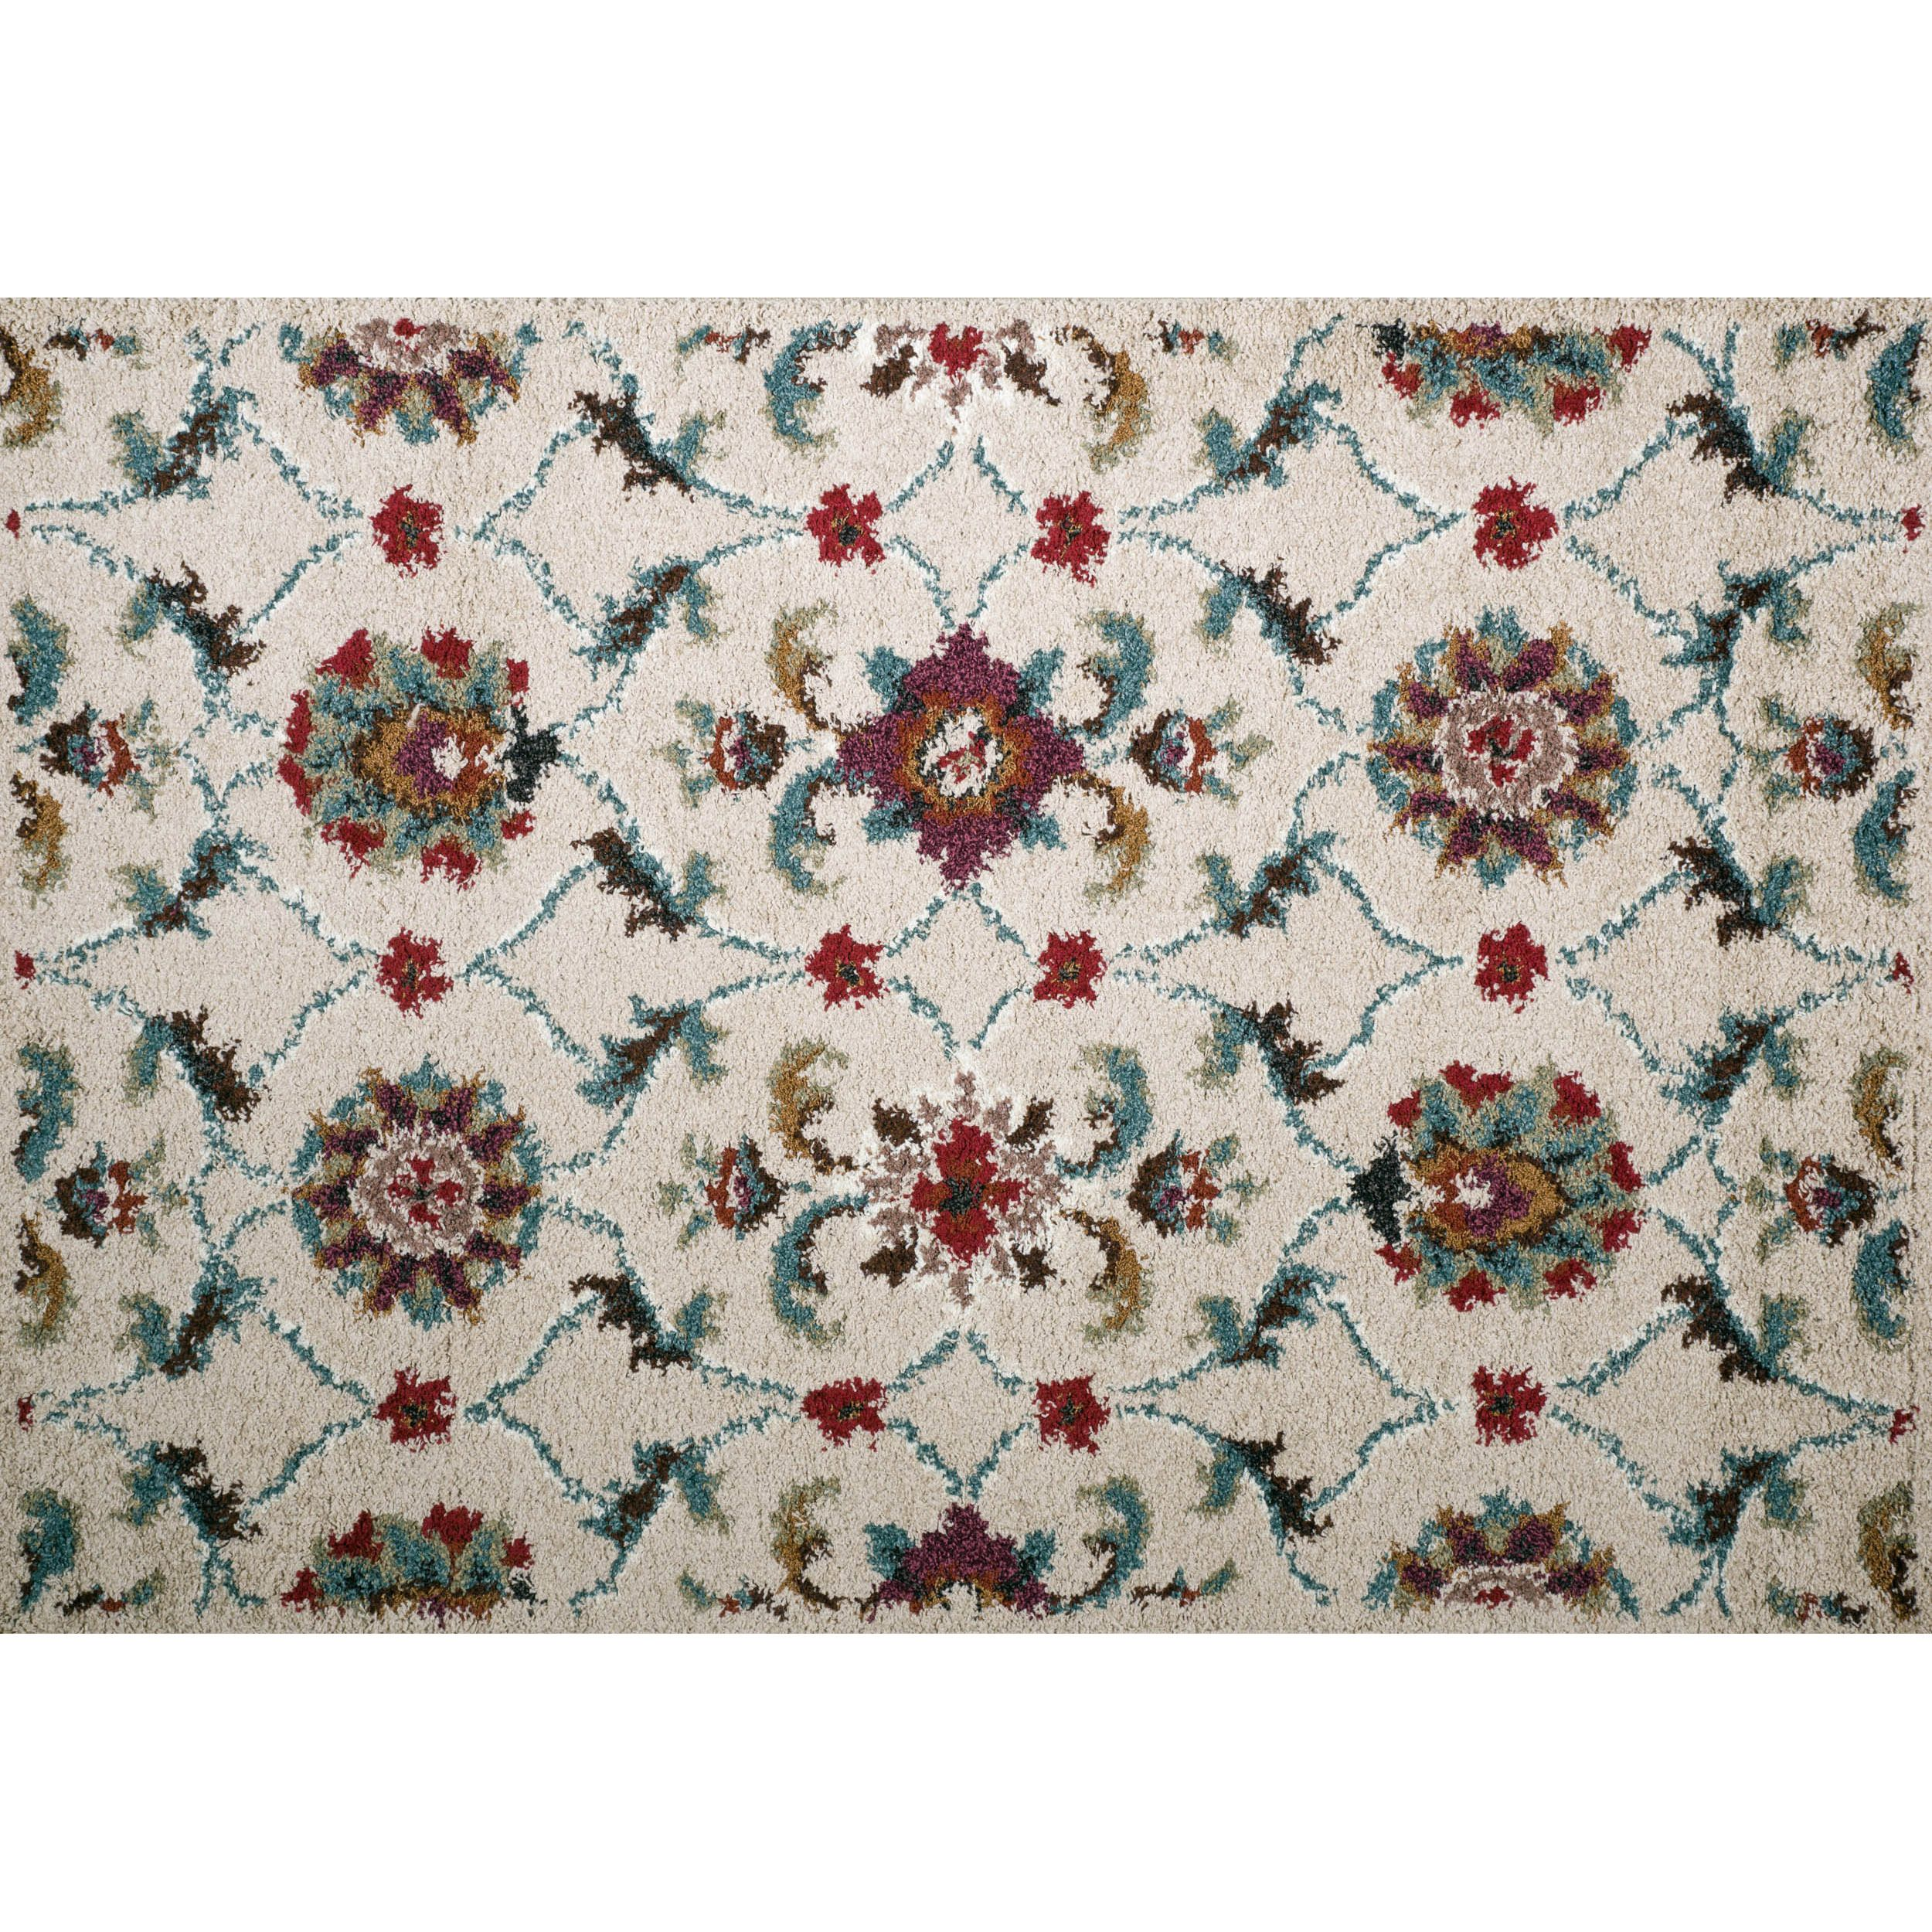 Christopher Knight Home Rose Aston Fl Frieze Rug 8 X 10 Multi Red Size